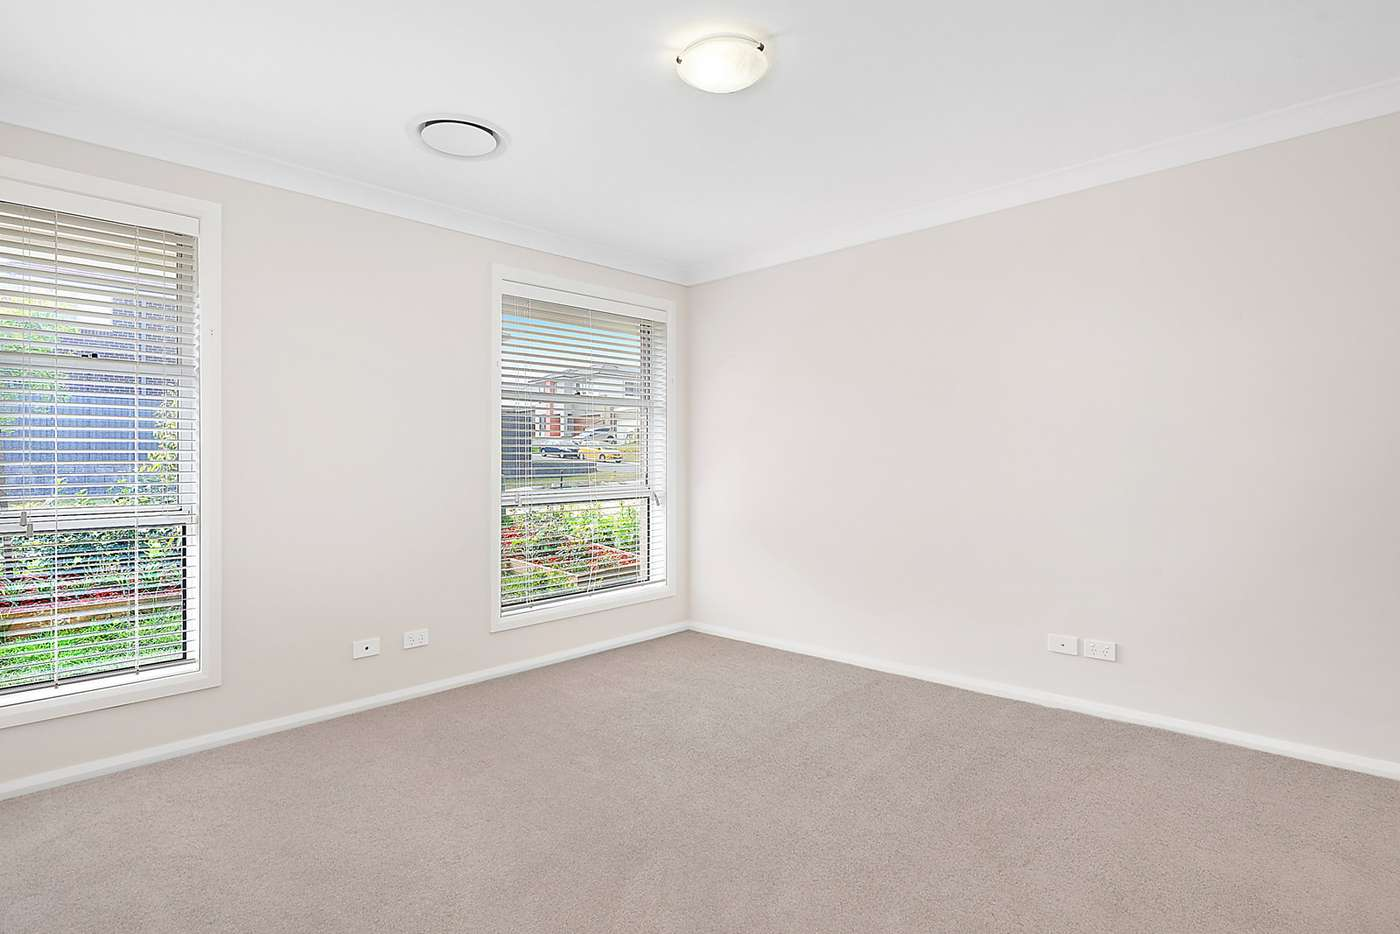 Fifth view of Homely house listing, 6 Michael Street, Schofields NSW 2762